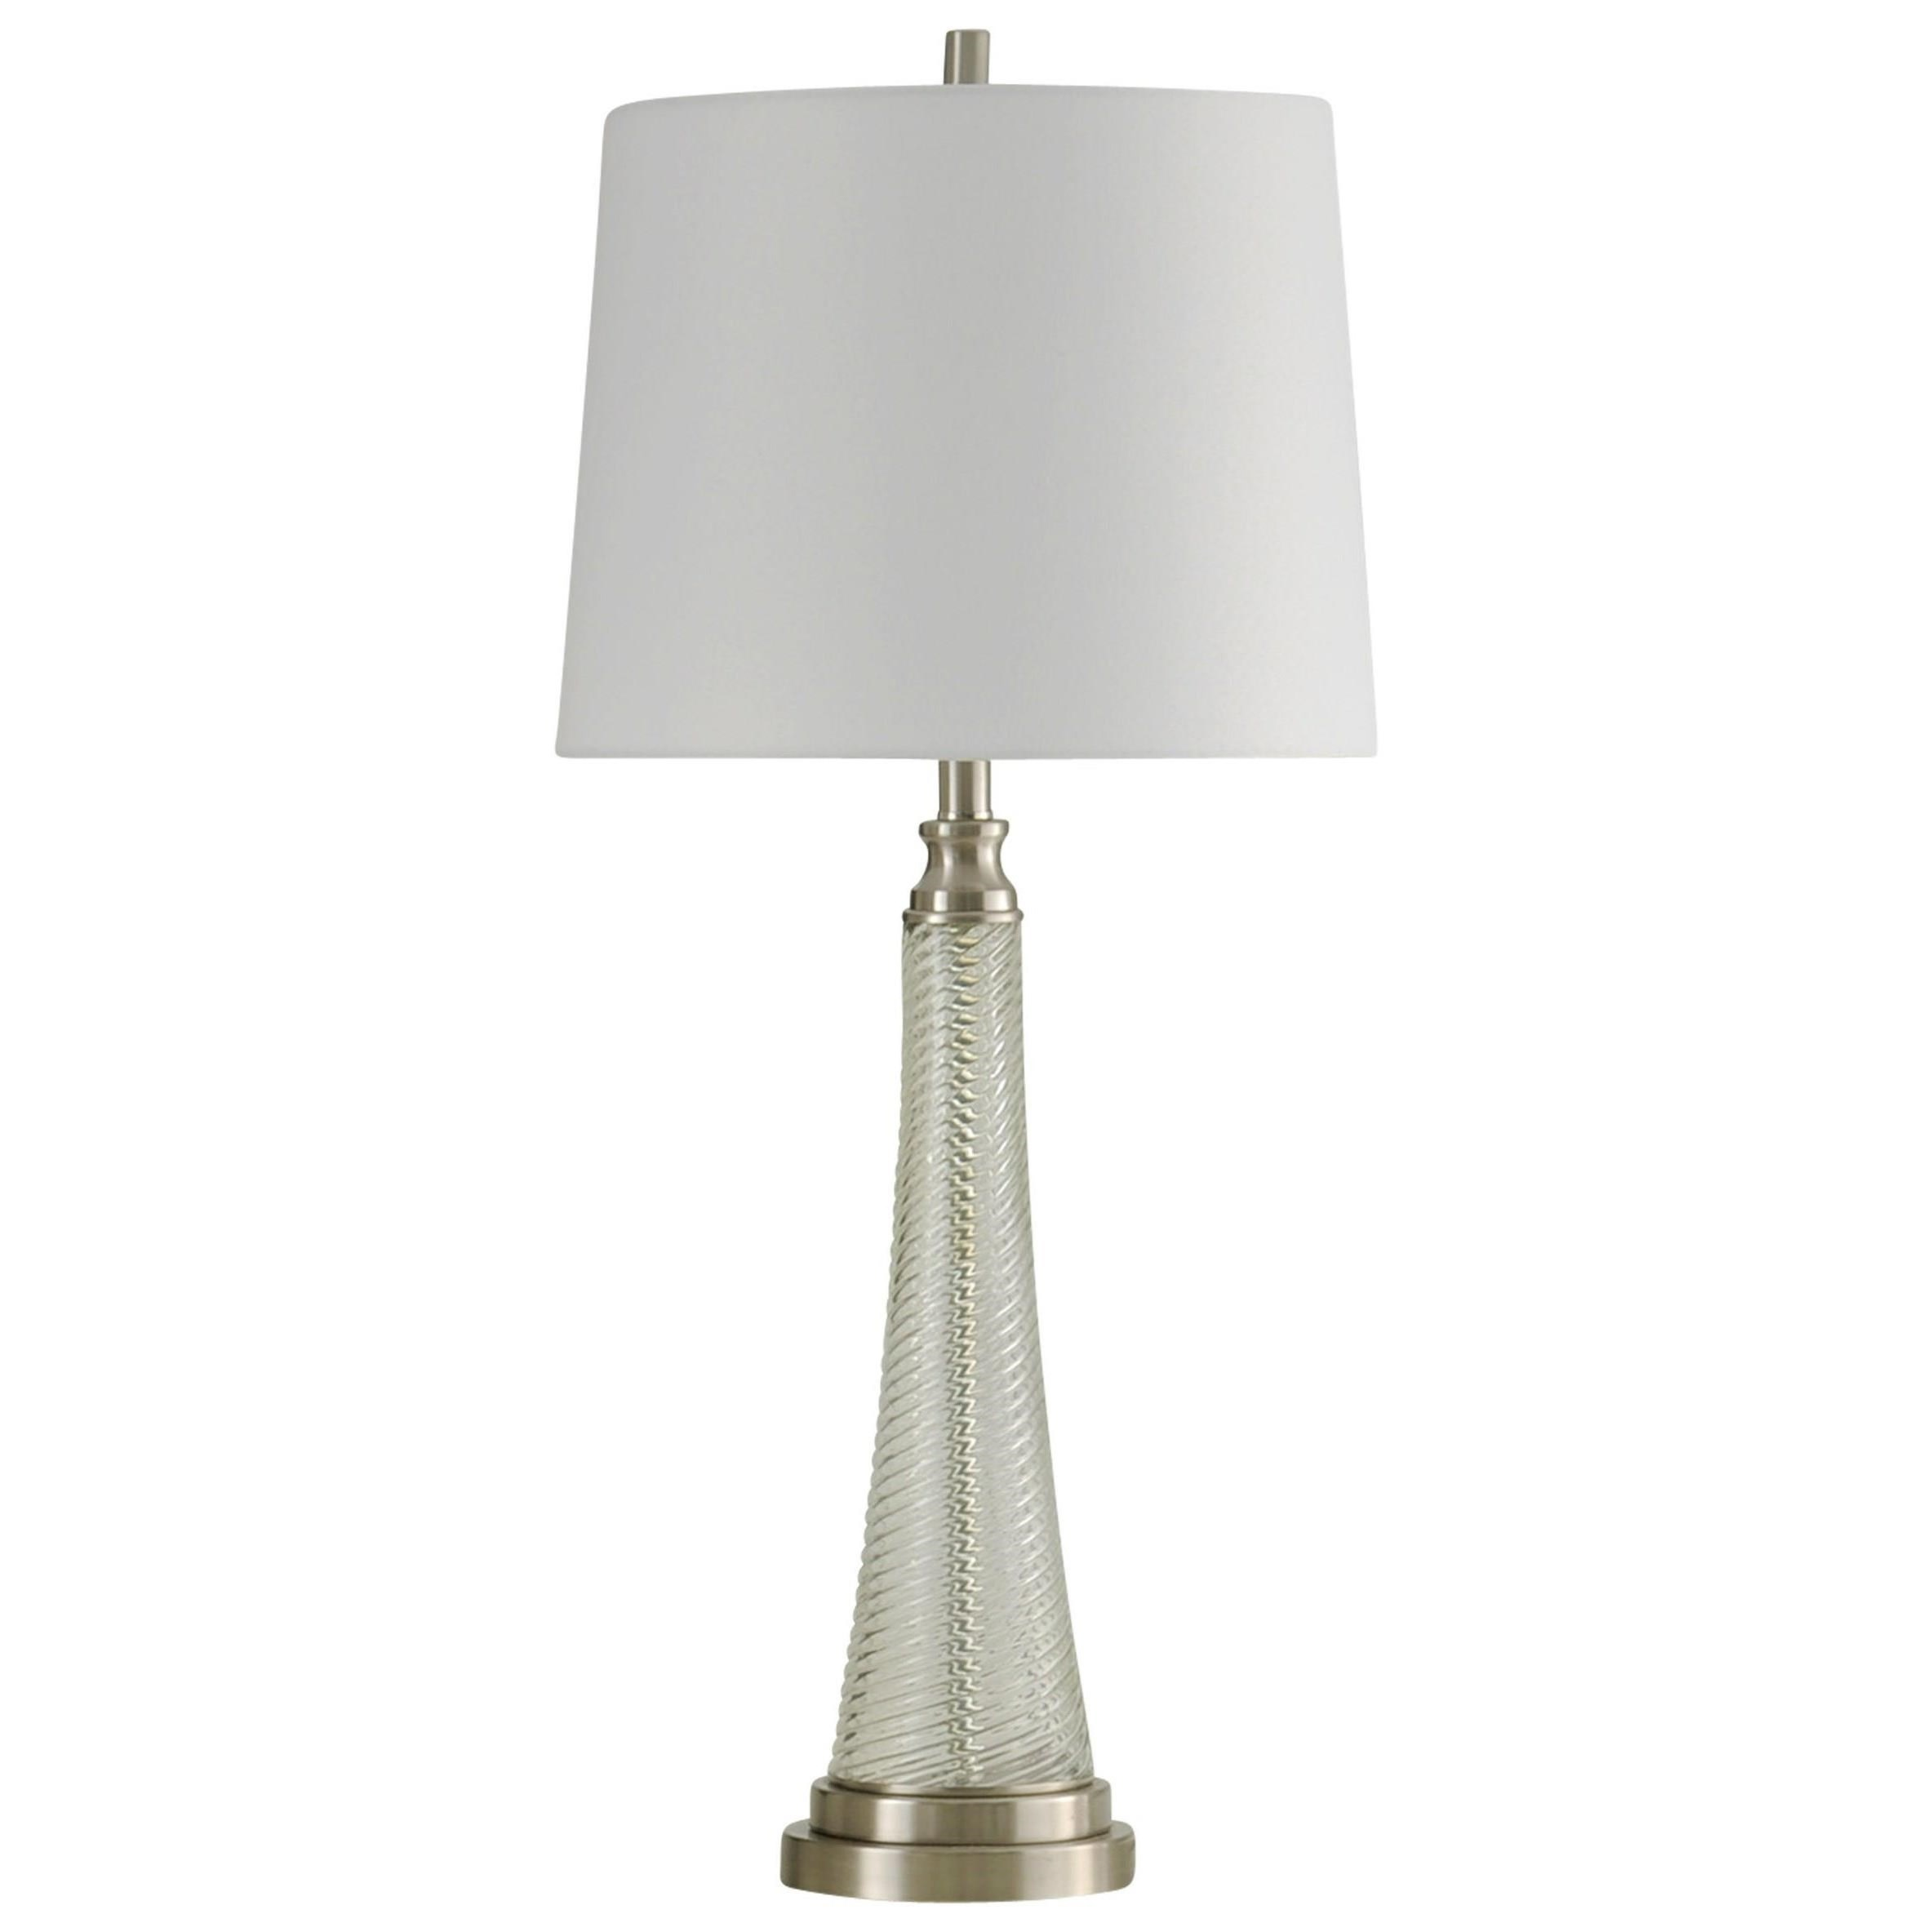 StyleCraft Lamps Table Lamp With Brushed Steel Accents   Hudsonu0027s Furniture    Table Lamps